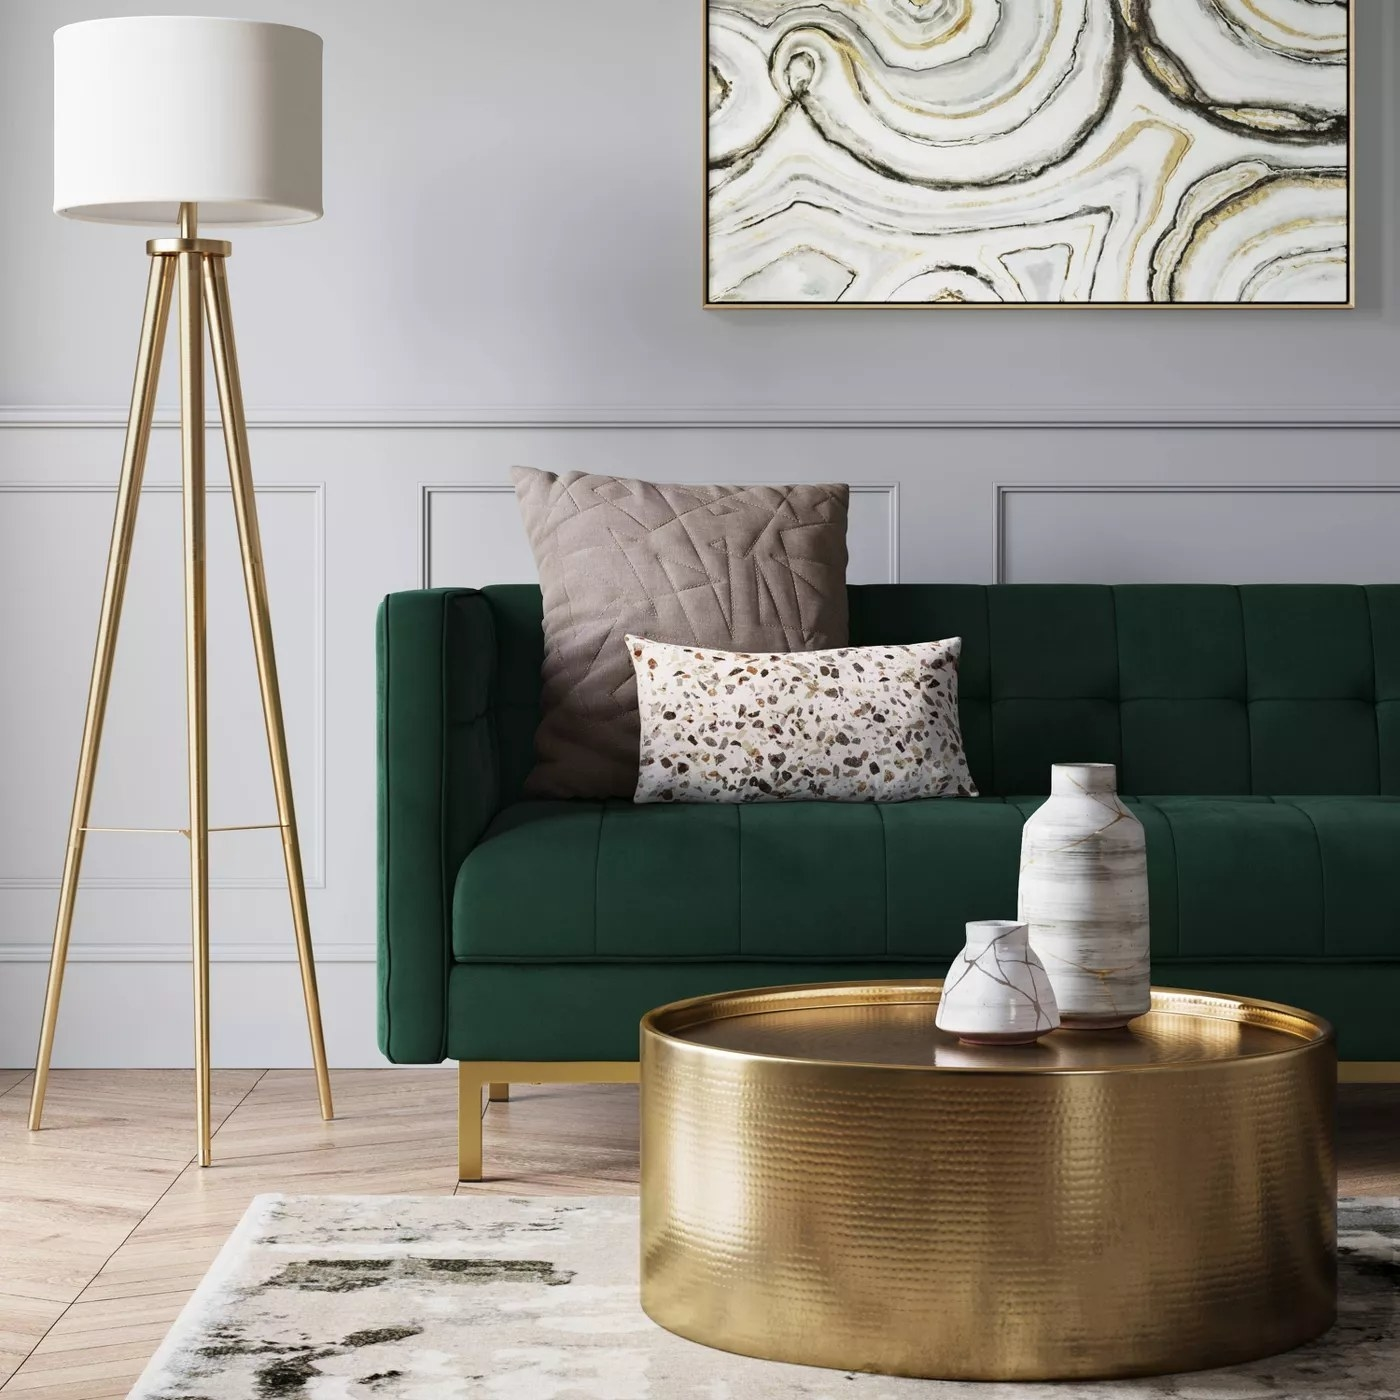 The green sofa with gold legs in a living room